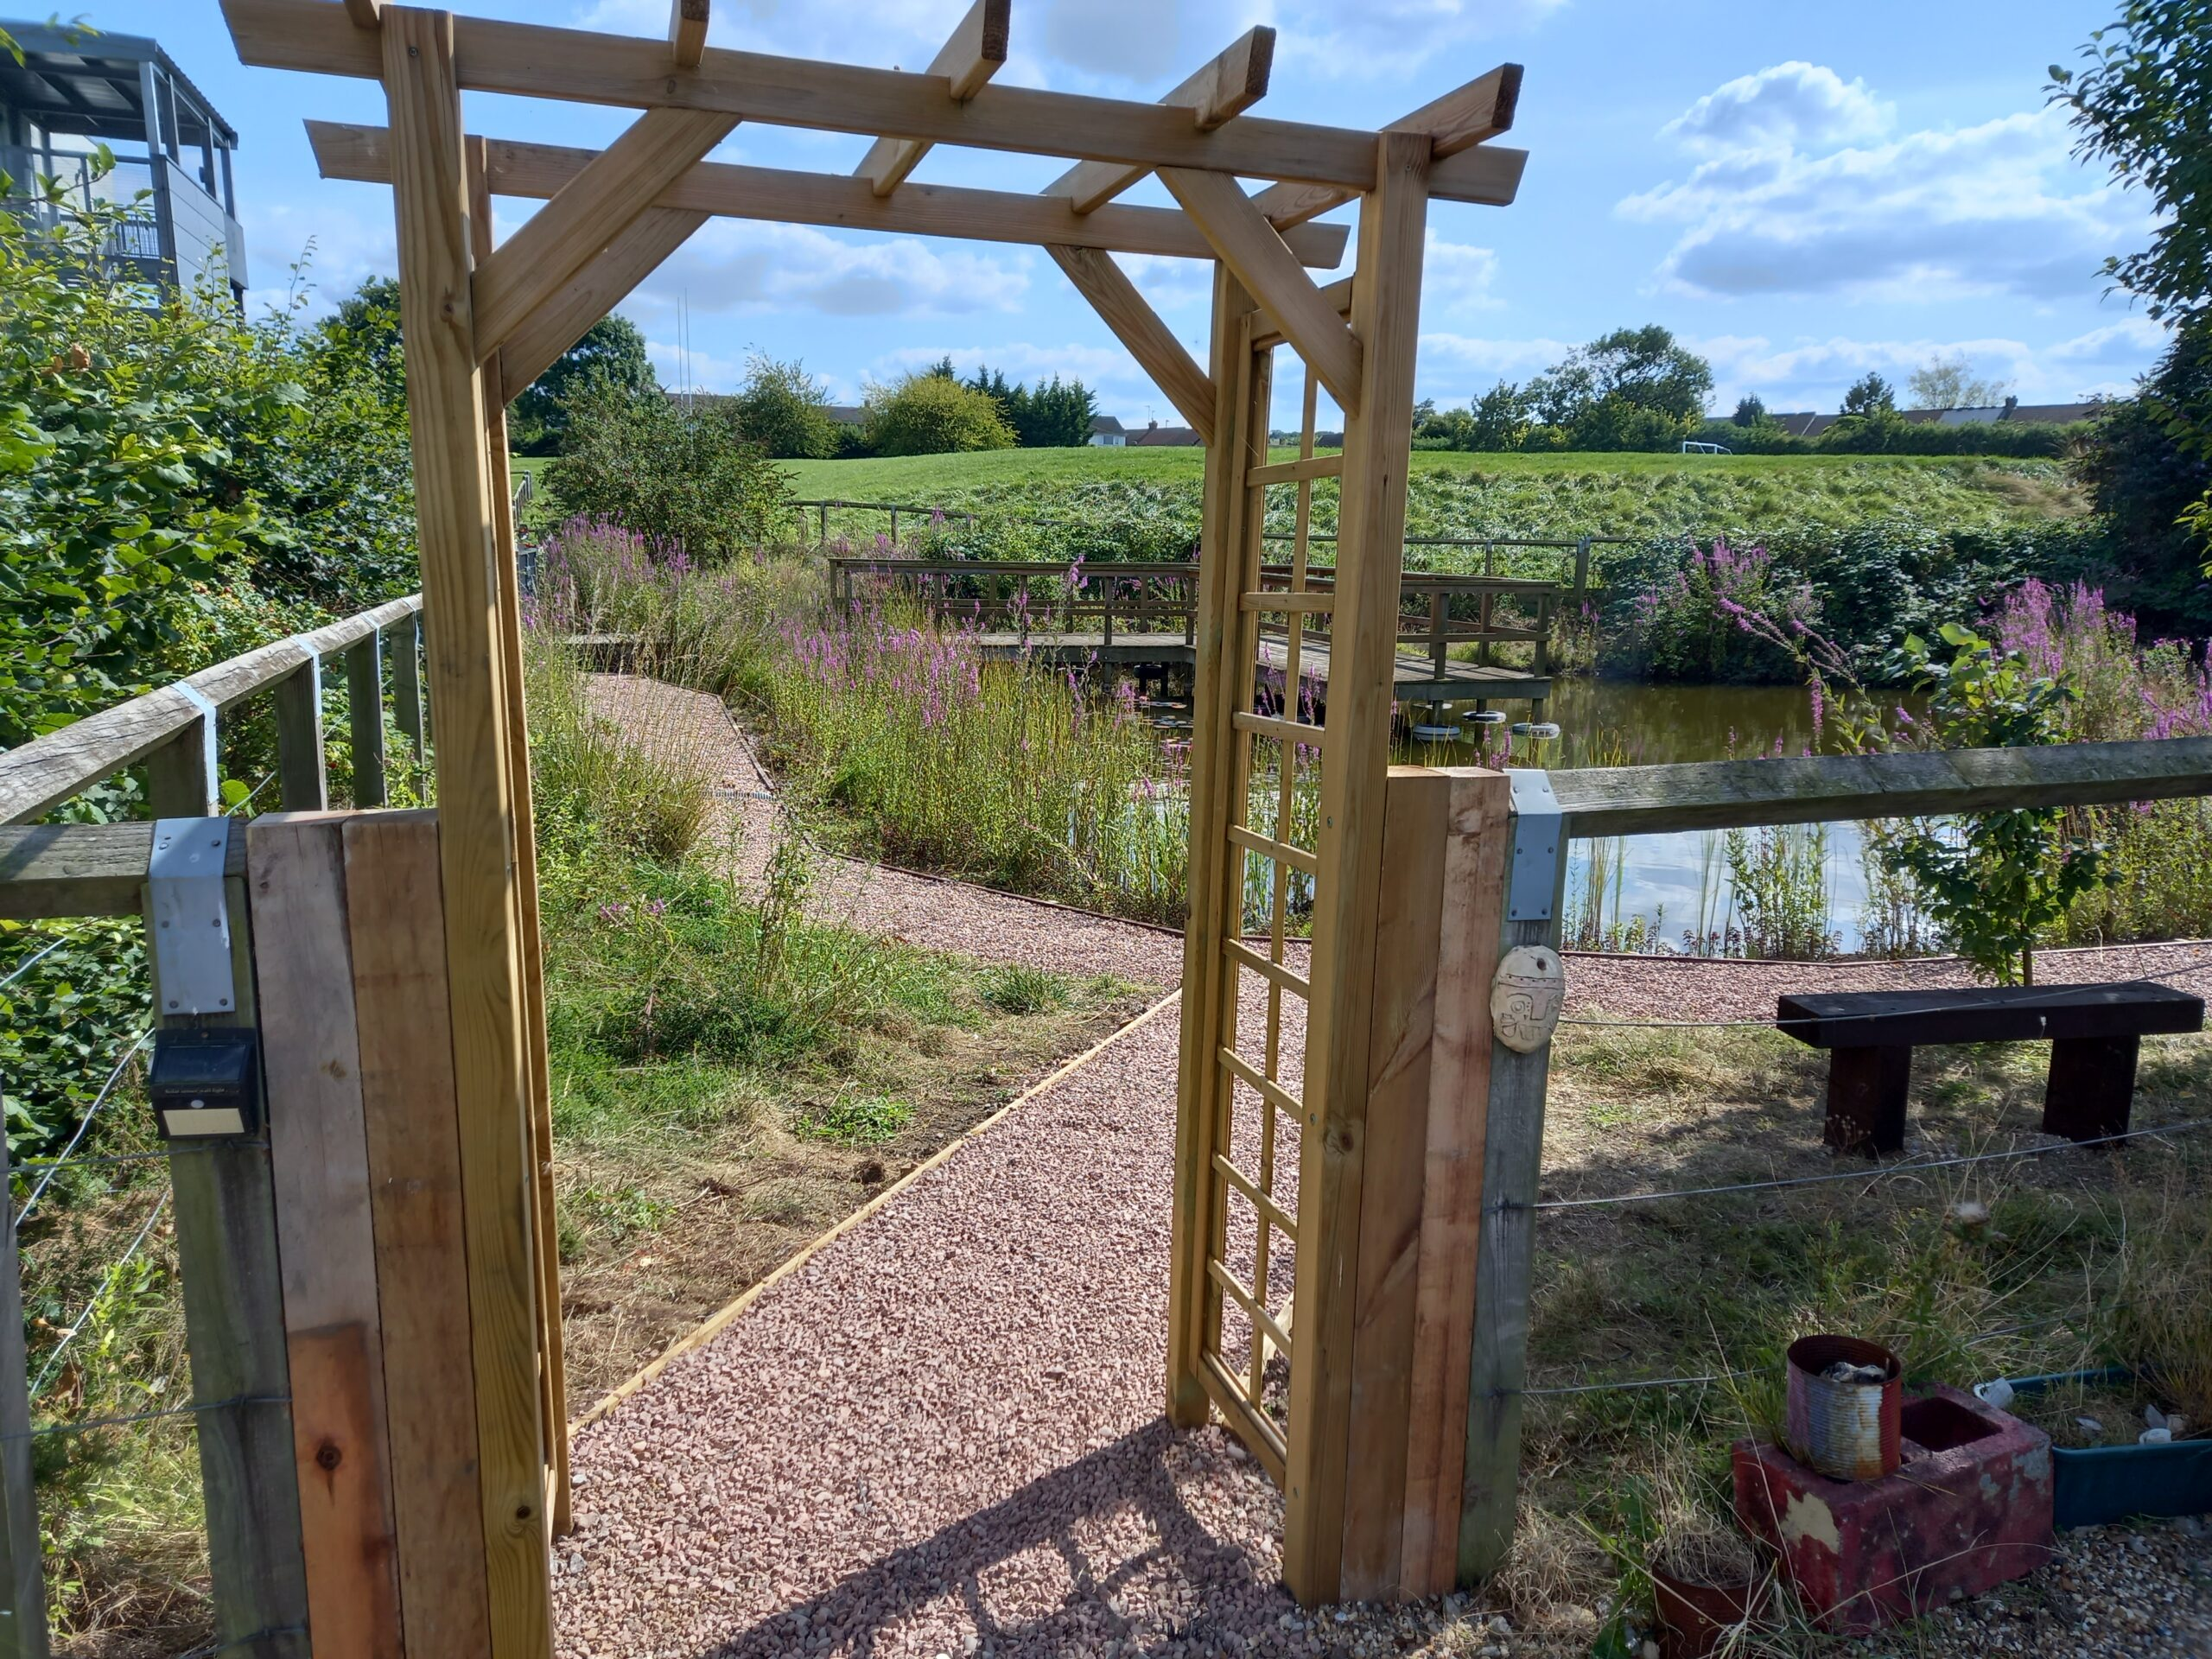 Academy gets improved nature area thanks to locals enrolled on an employment course